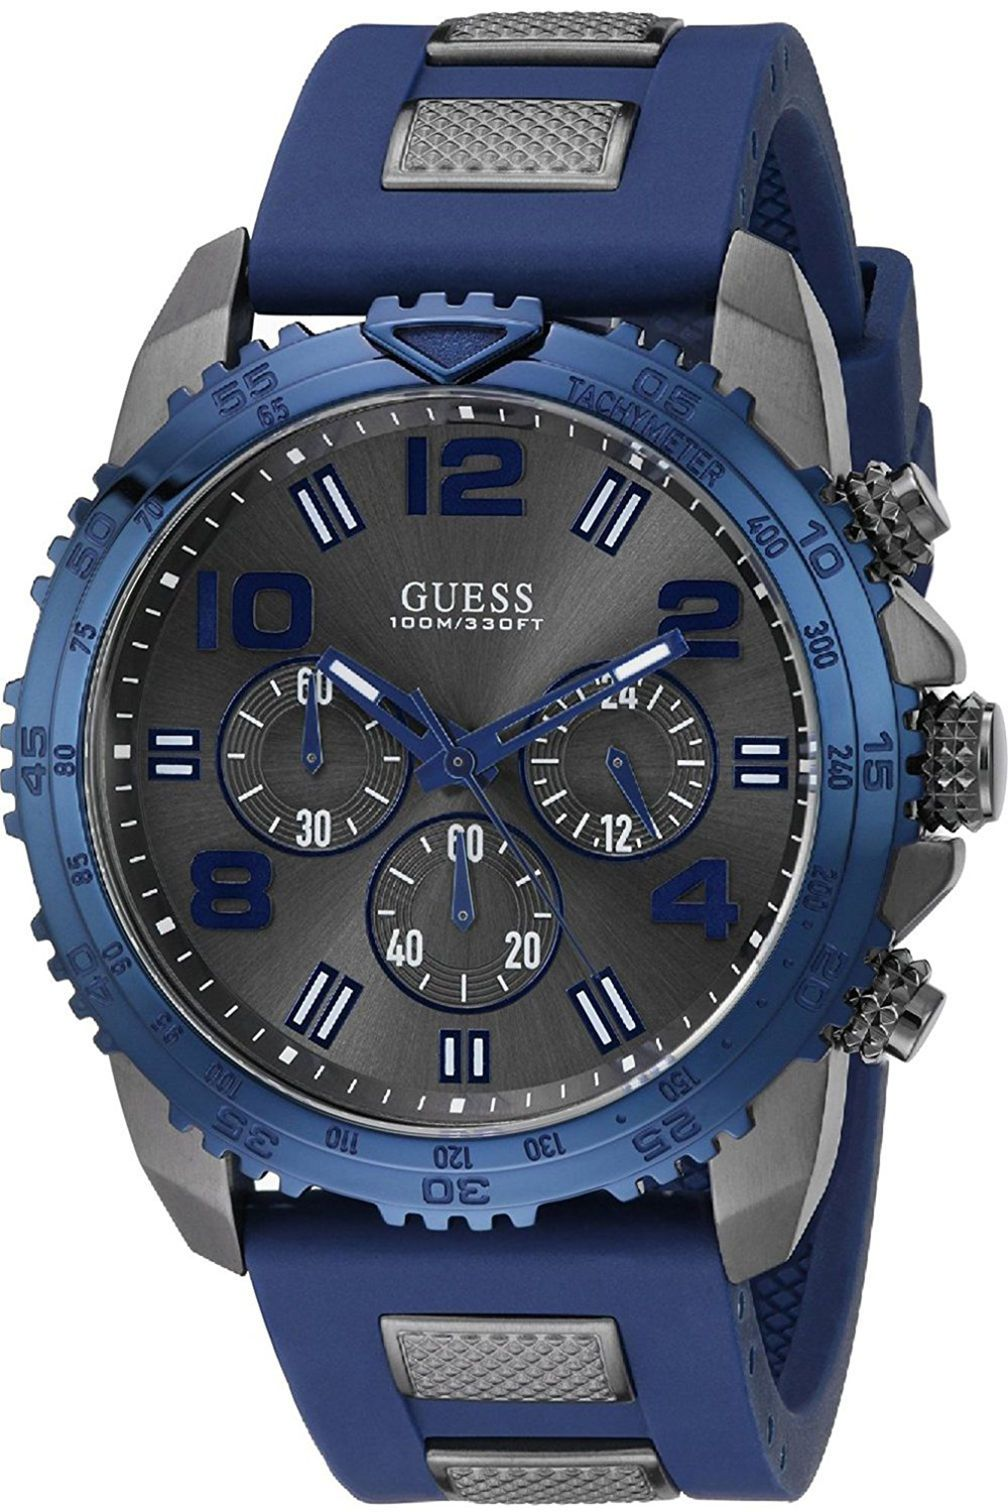 GUESS WGMenus ChronographBRAND NEW WITH TAG AND GUESS BOX